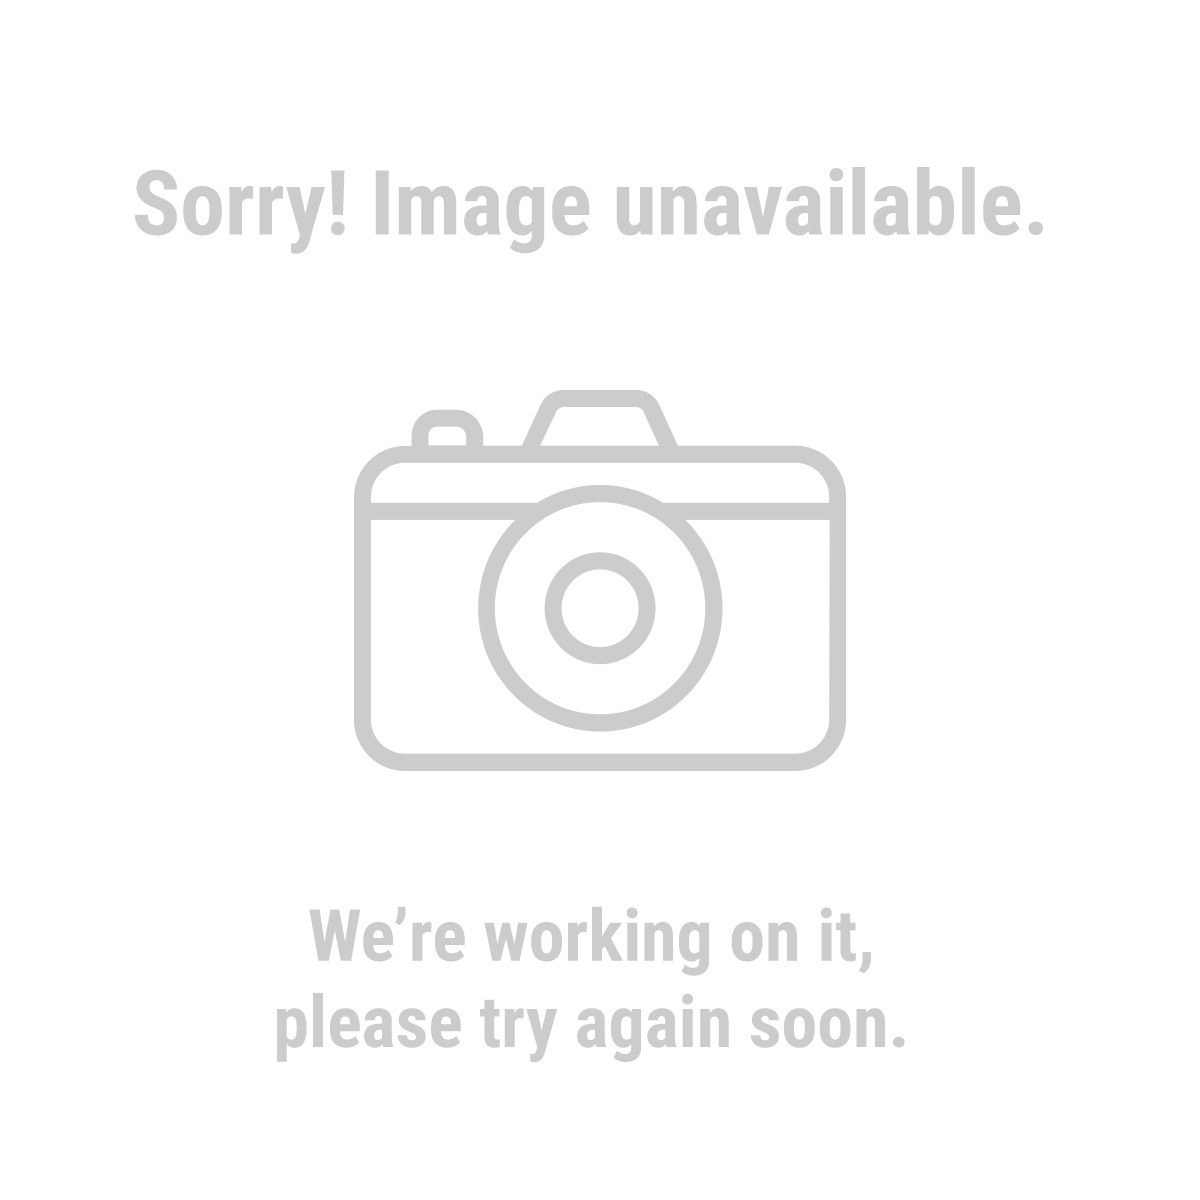 Bunker Hill Security 60565 Color Security System with Two Cameras & Flat Panel Monitor